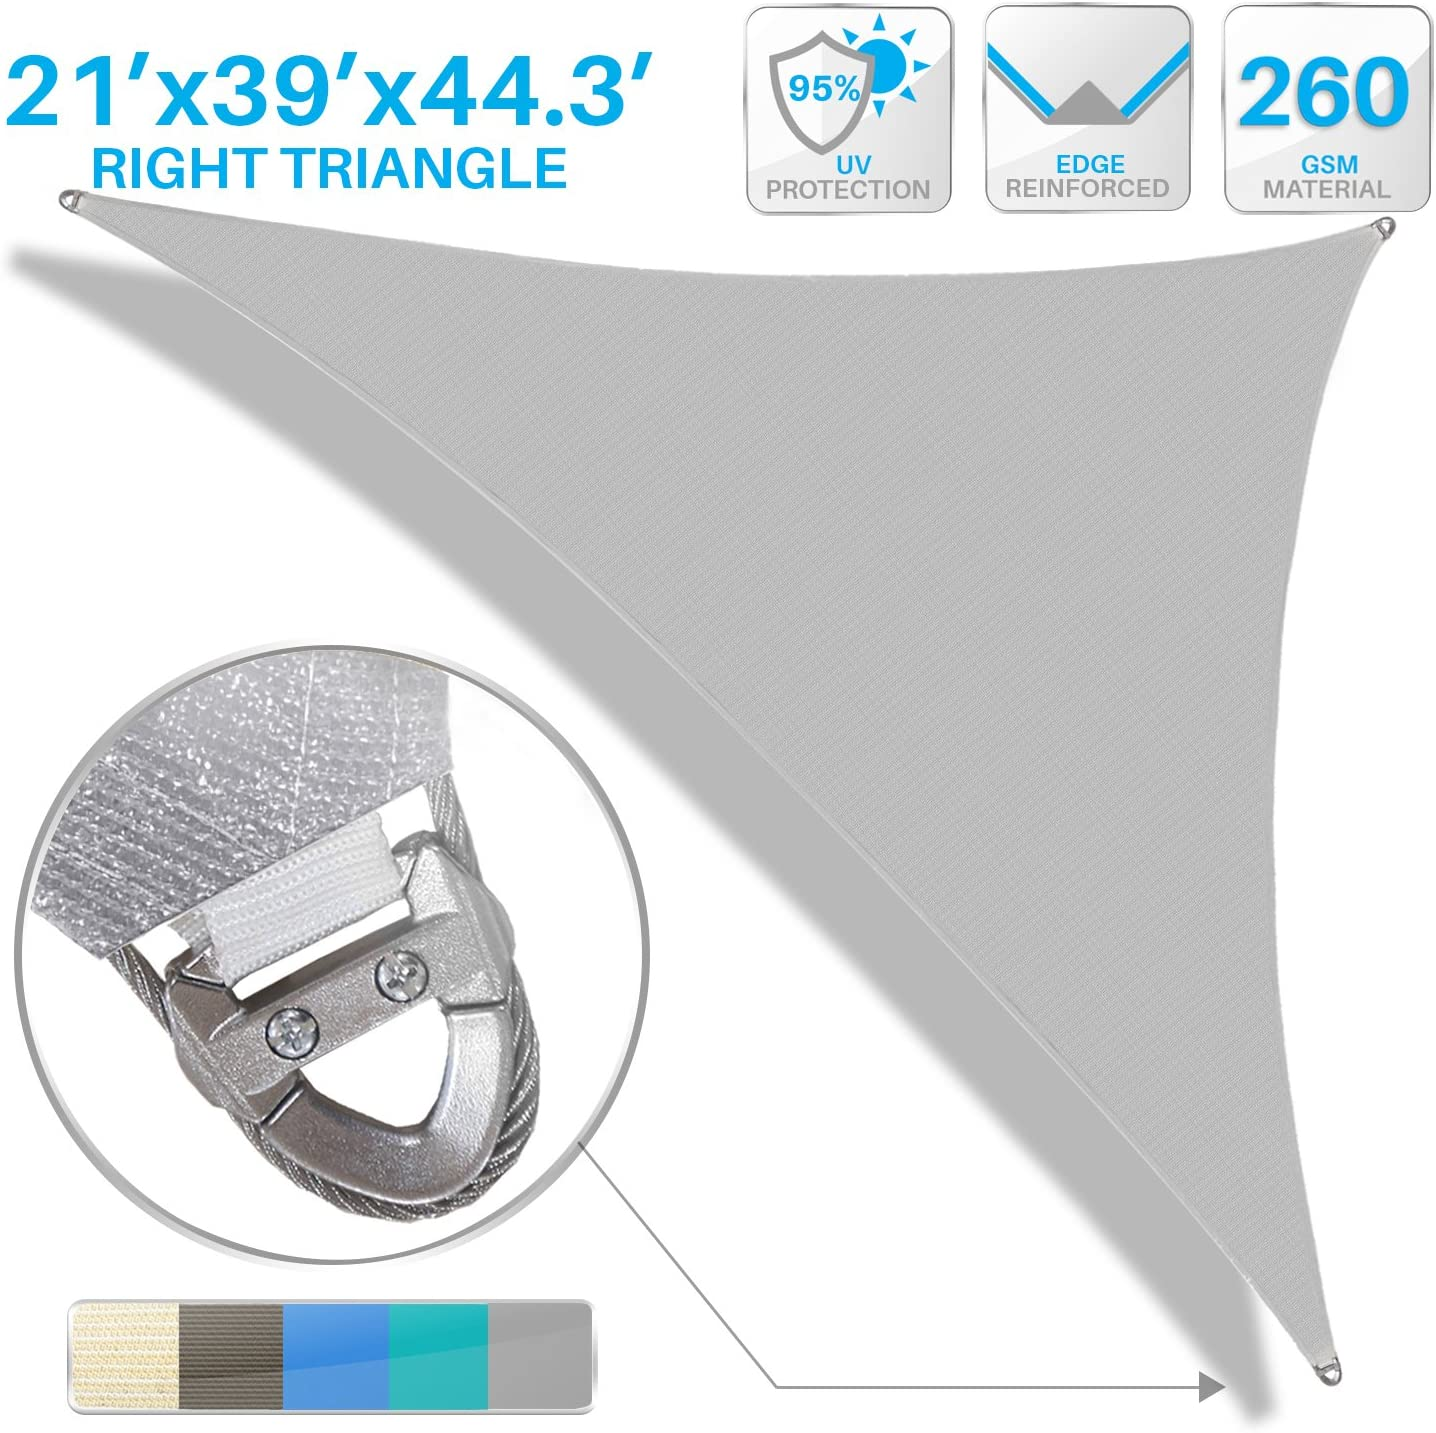 B07CPFD7TN Patio Large Sun Shade Sail 21\' x 39\' x 44\' Right Triangle Heavy Duty Strengthen Durable Outdoor Canopy UV Block Fabric A-Ring Design Metal Spring Reinforcement 7 Year Warranty -Light Gray 817SvKyxMOL.SL1500_